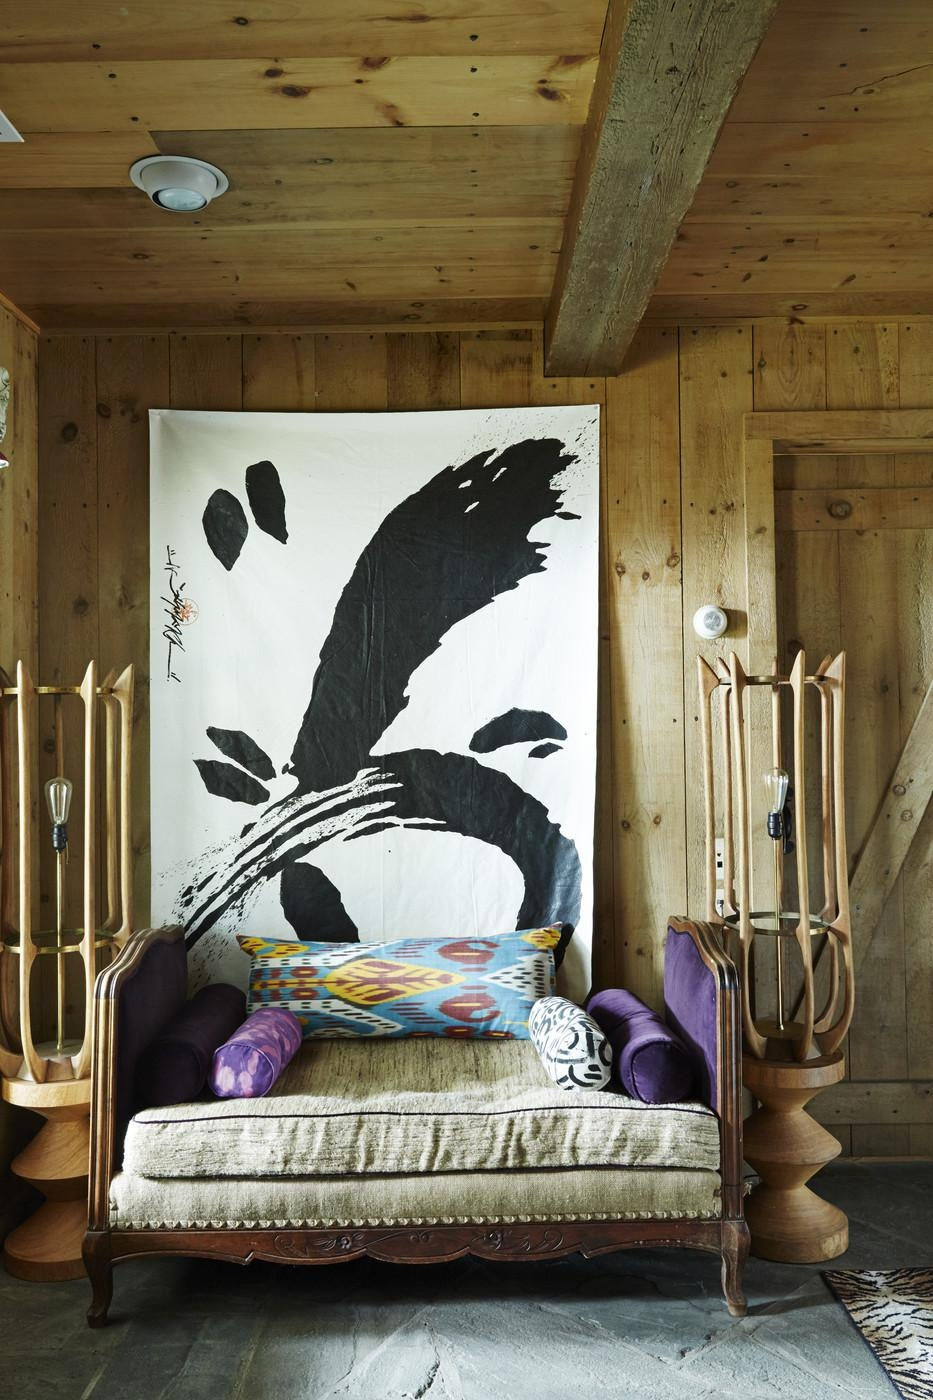 Make A Statement With Large Wall Art | Décor Aid In Oversized Wall Art (View 10 of 20)